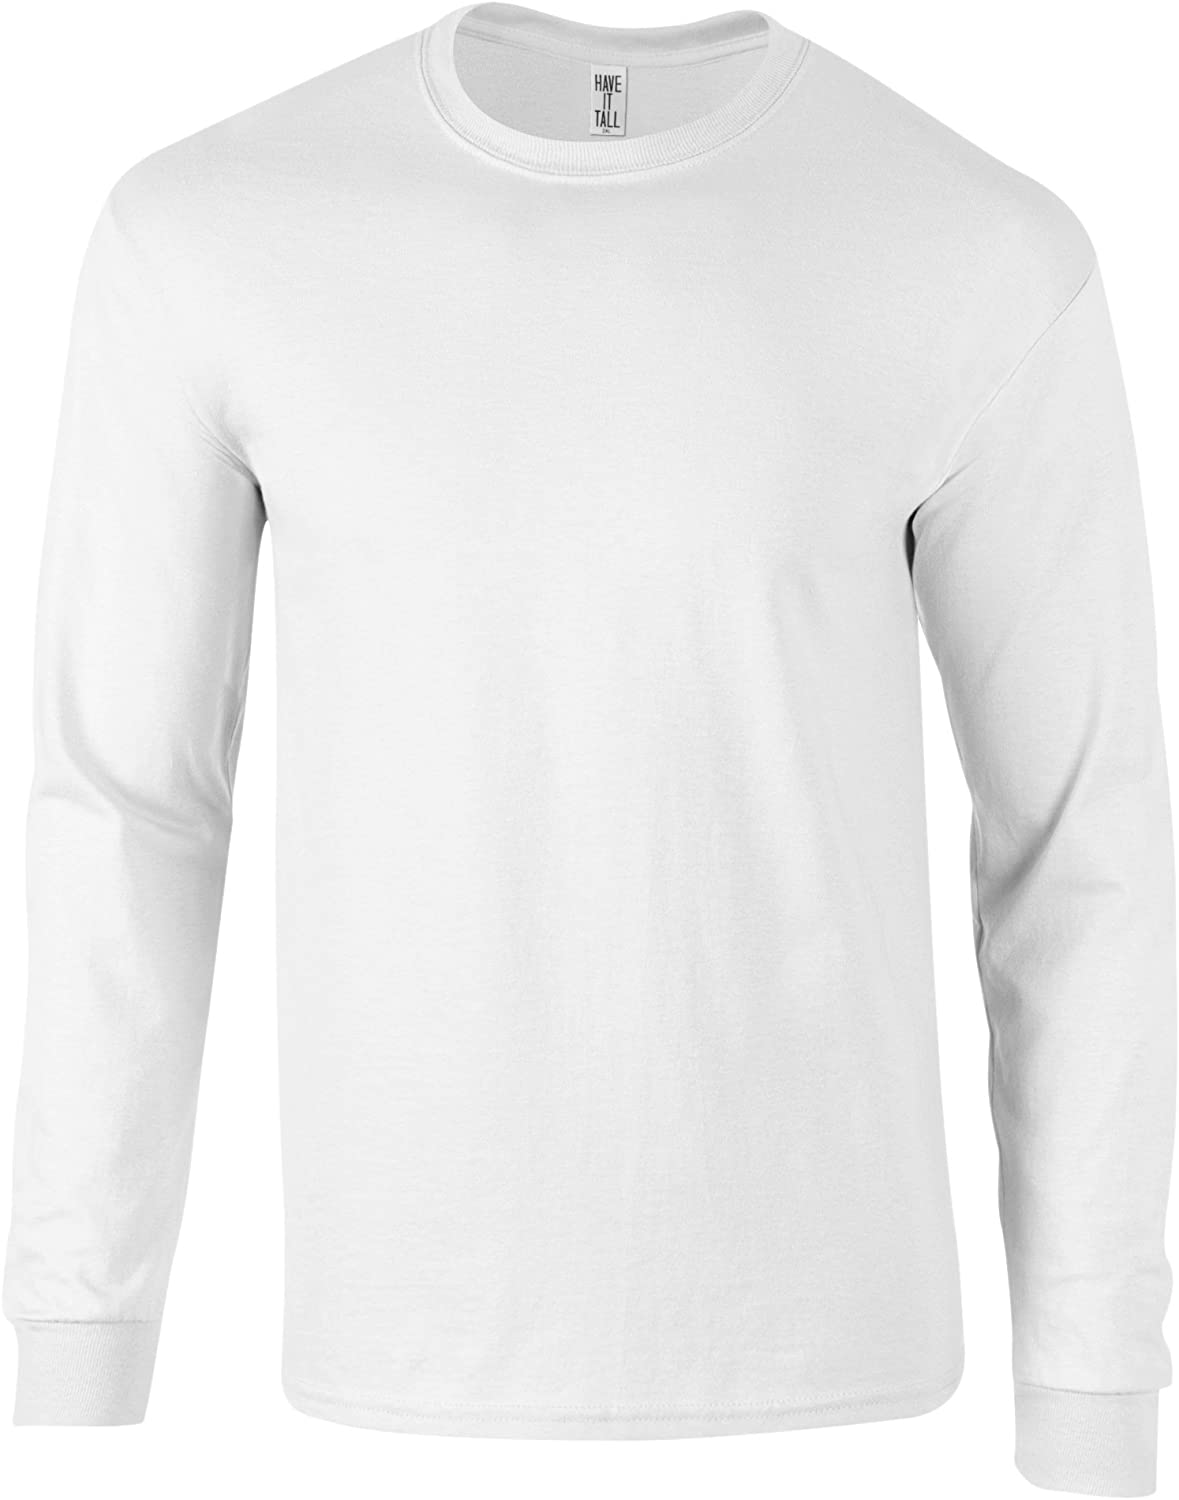 Have It Tall T Shirts for Men and Women | Cotton Long Sleeve | Sizes S - 2XL